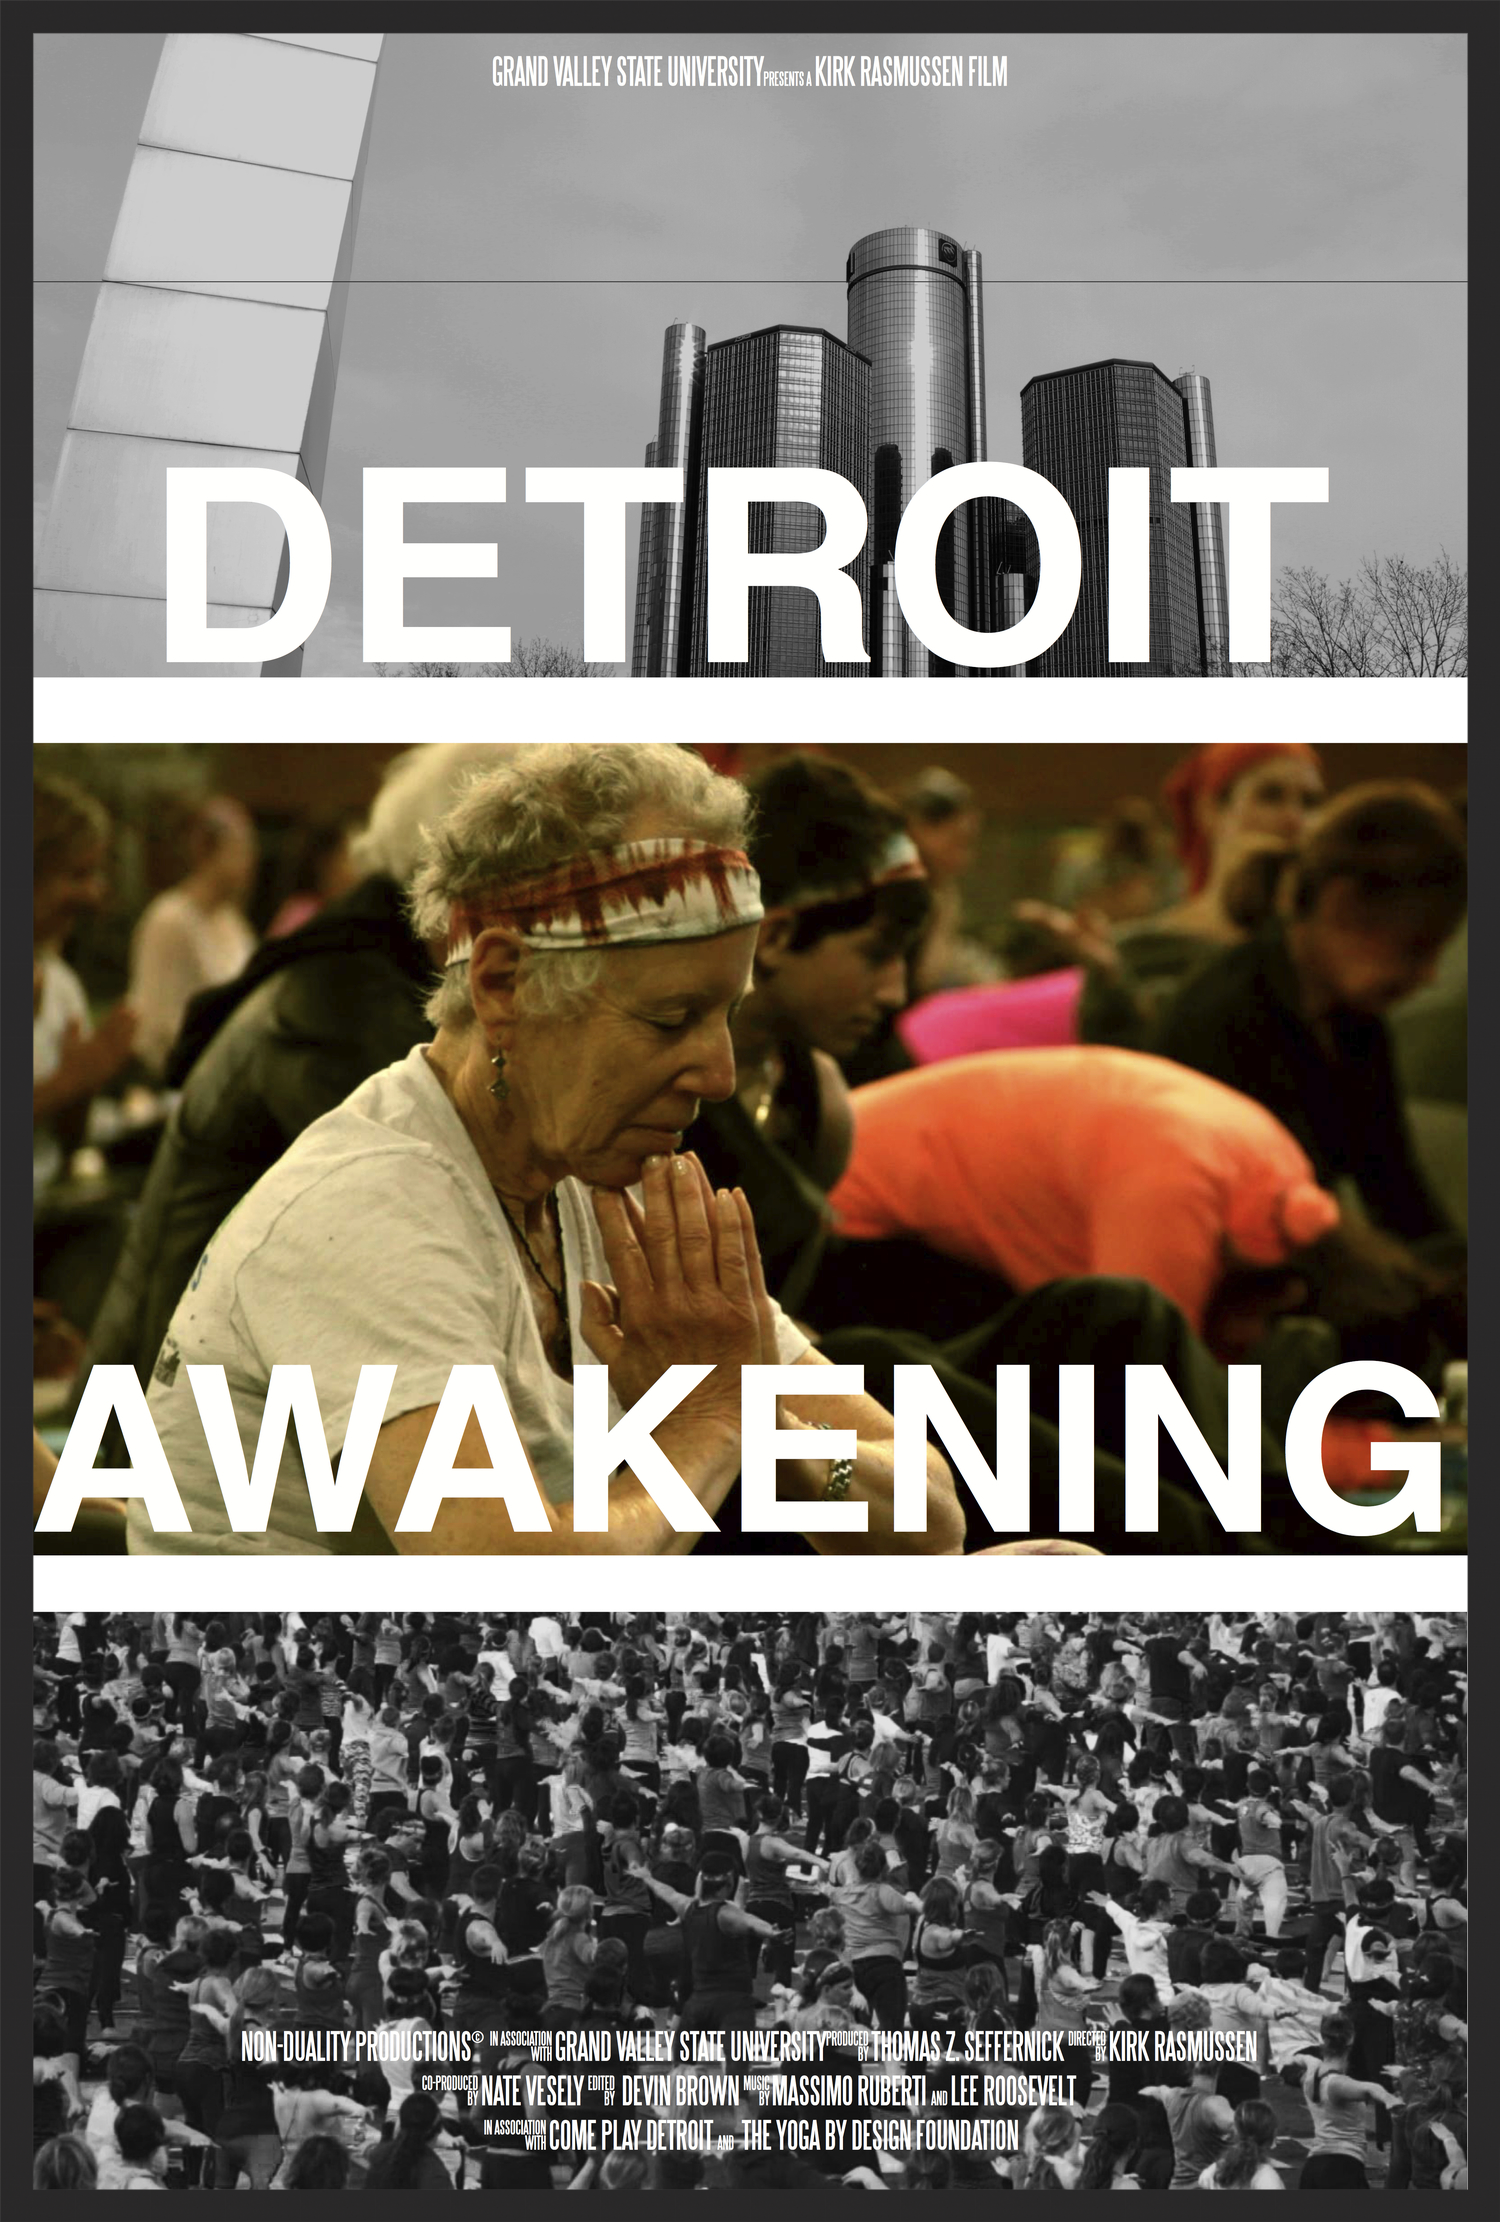 Detroit Awakening   is a film aboutthe identity of Detroit, and the works of Individuals who redefine their city by setting a world-record Yoga Session at the iconic Ford Field Stadium. The film debut at the GVSU Showcase, 2014.